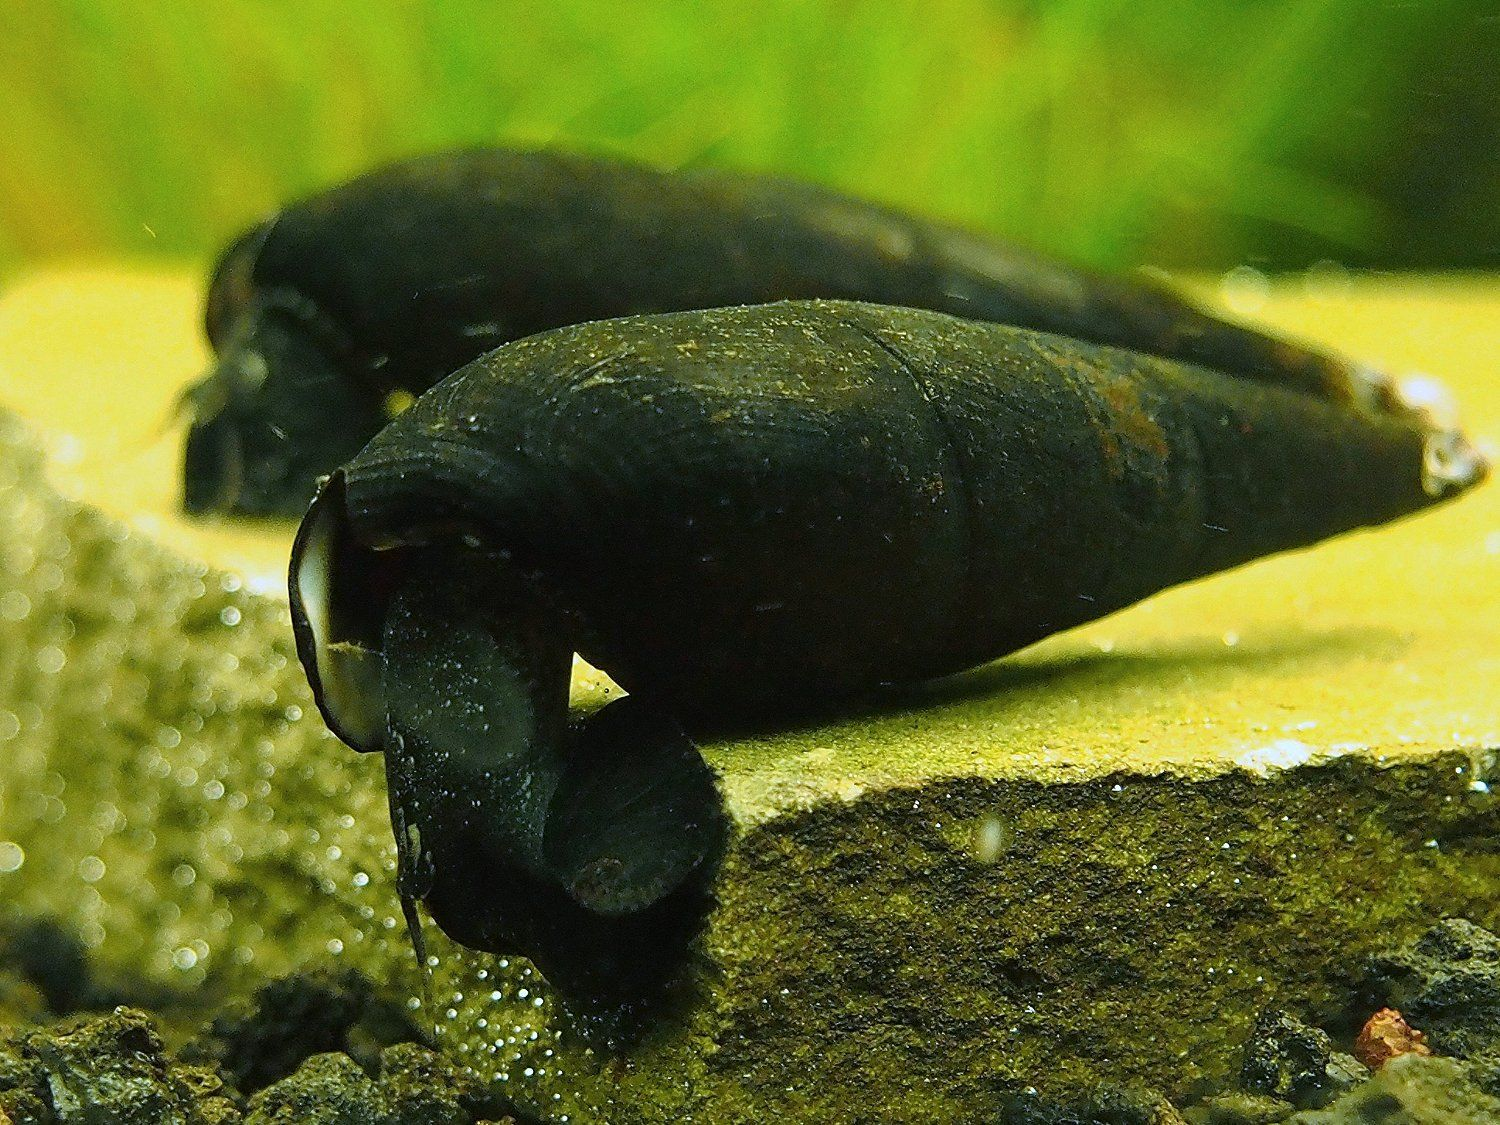 Freshwater Aquarium Fish Under 1 Inch - 482 best images about fish tanks on pinterest cichlids tropical fish and tropical aquarium